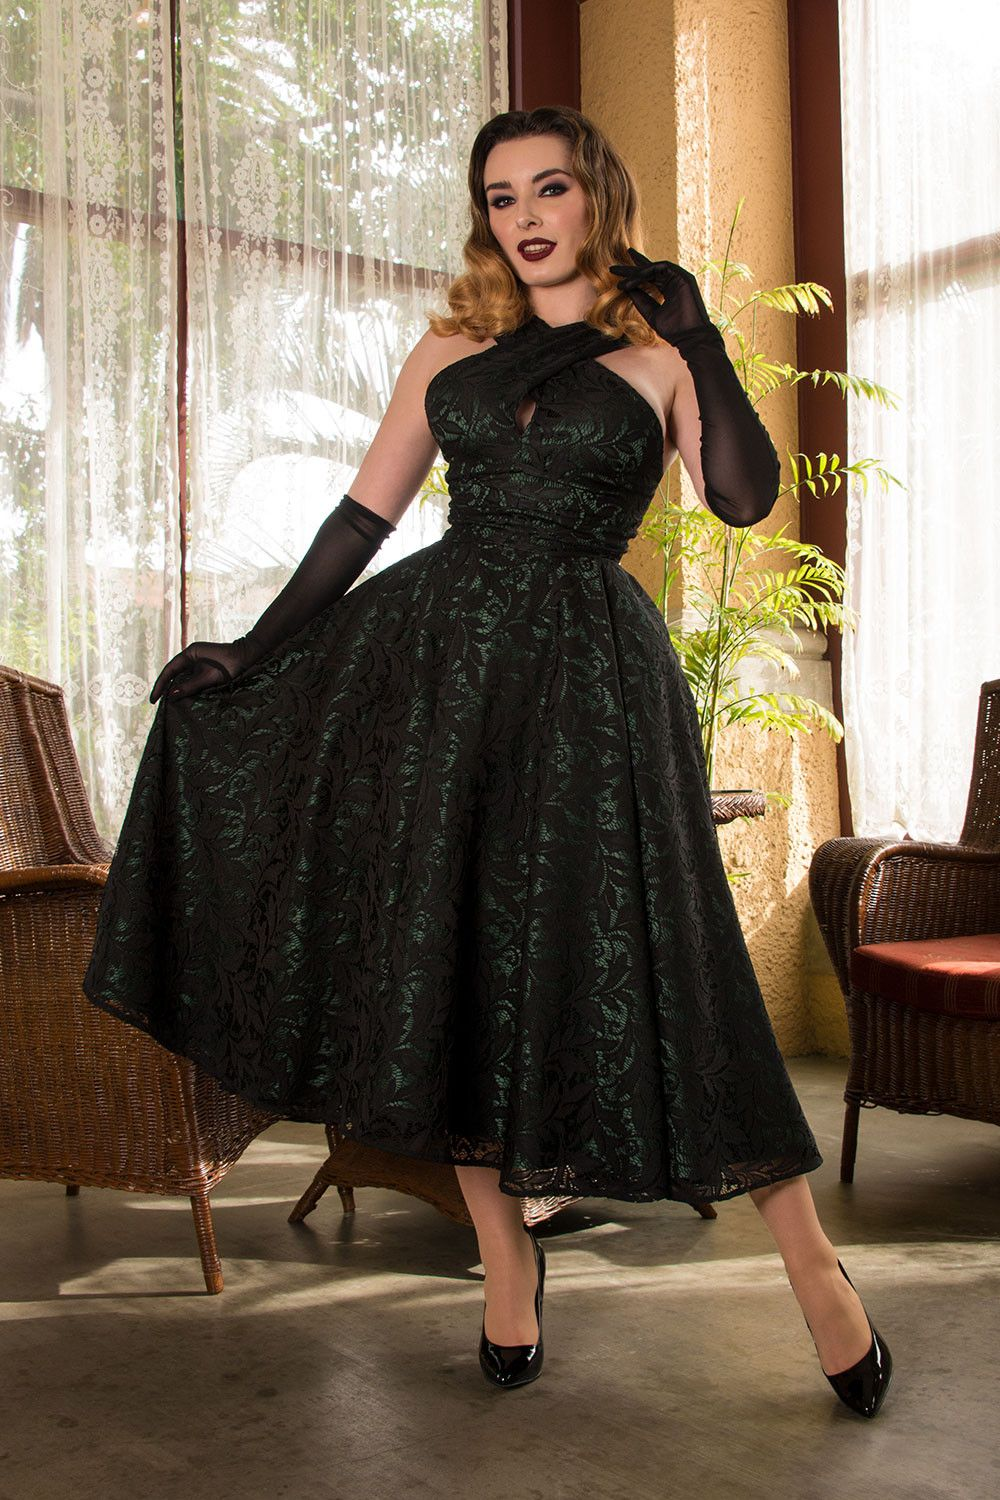 Green dress with lace overlay  Pinup Couture Mia Dress in Green Satin with Black Bisou Lace Overlay